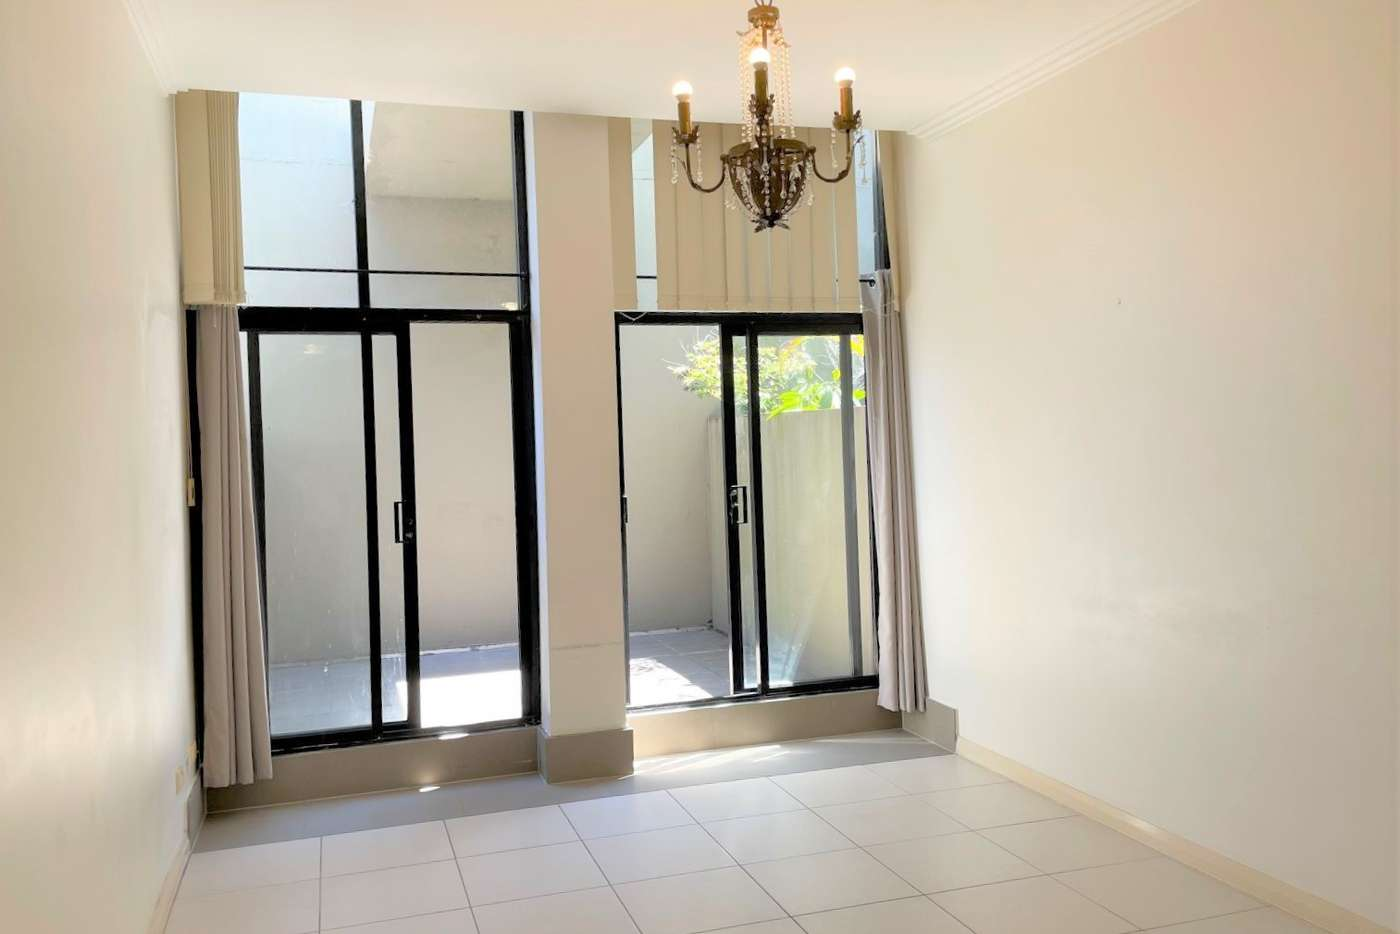 Main view of Homely apartment listing, 124/402 Pacific Highway, Crows Nest NSW 2065